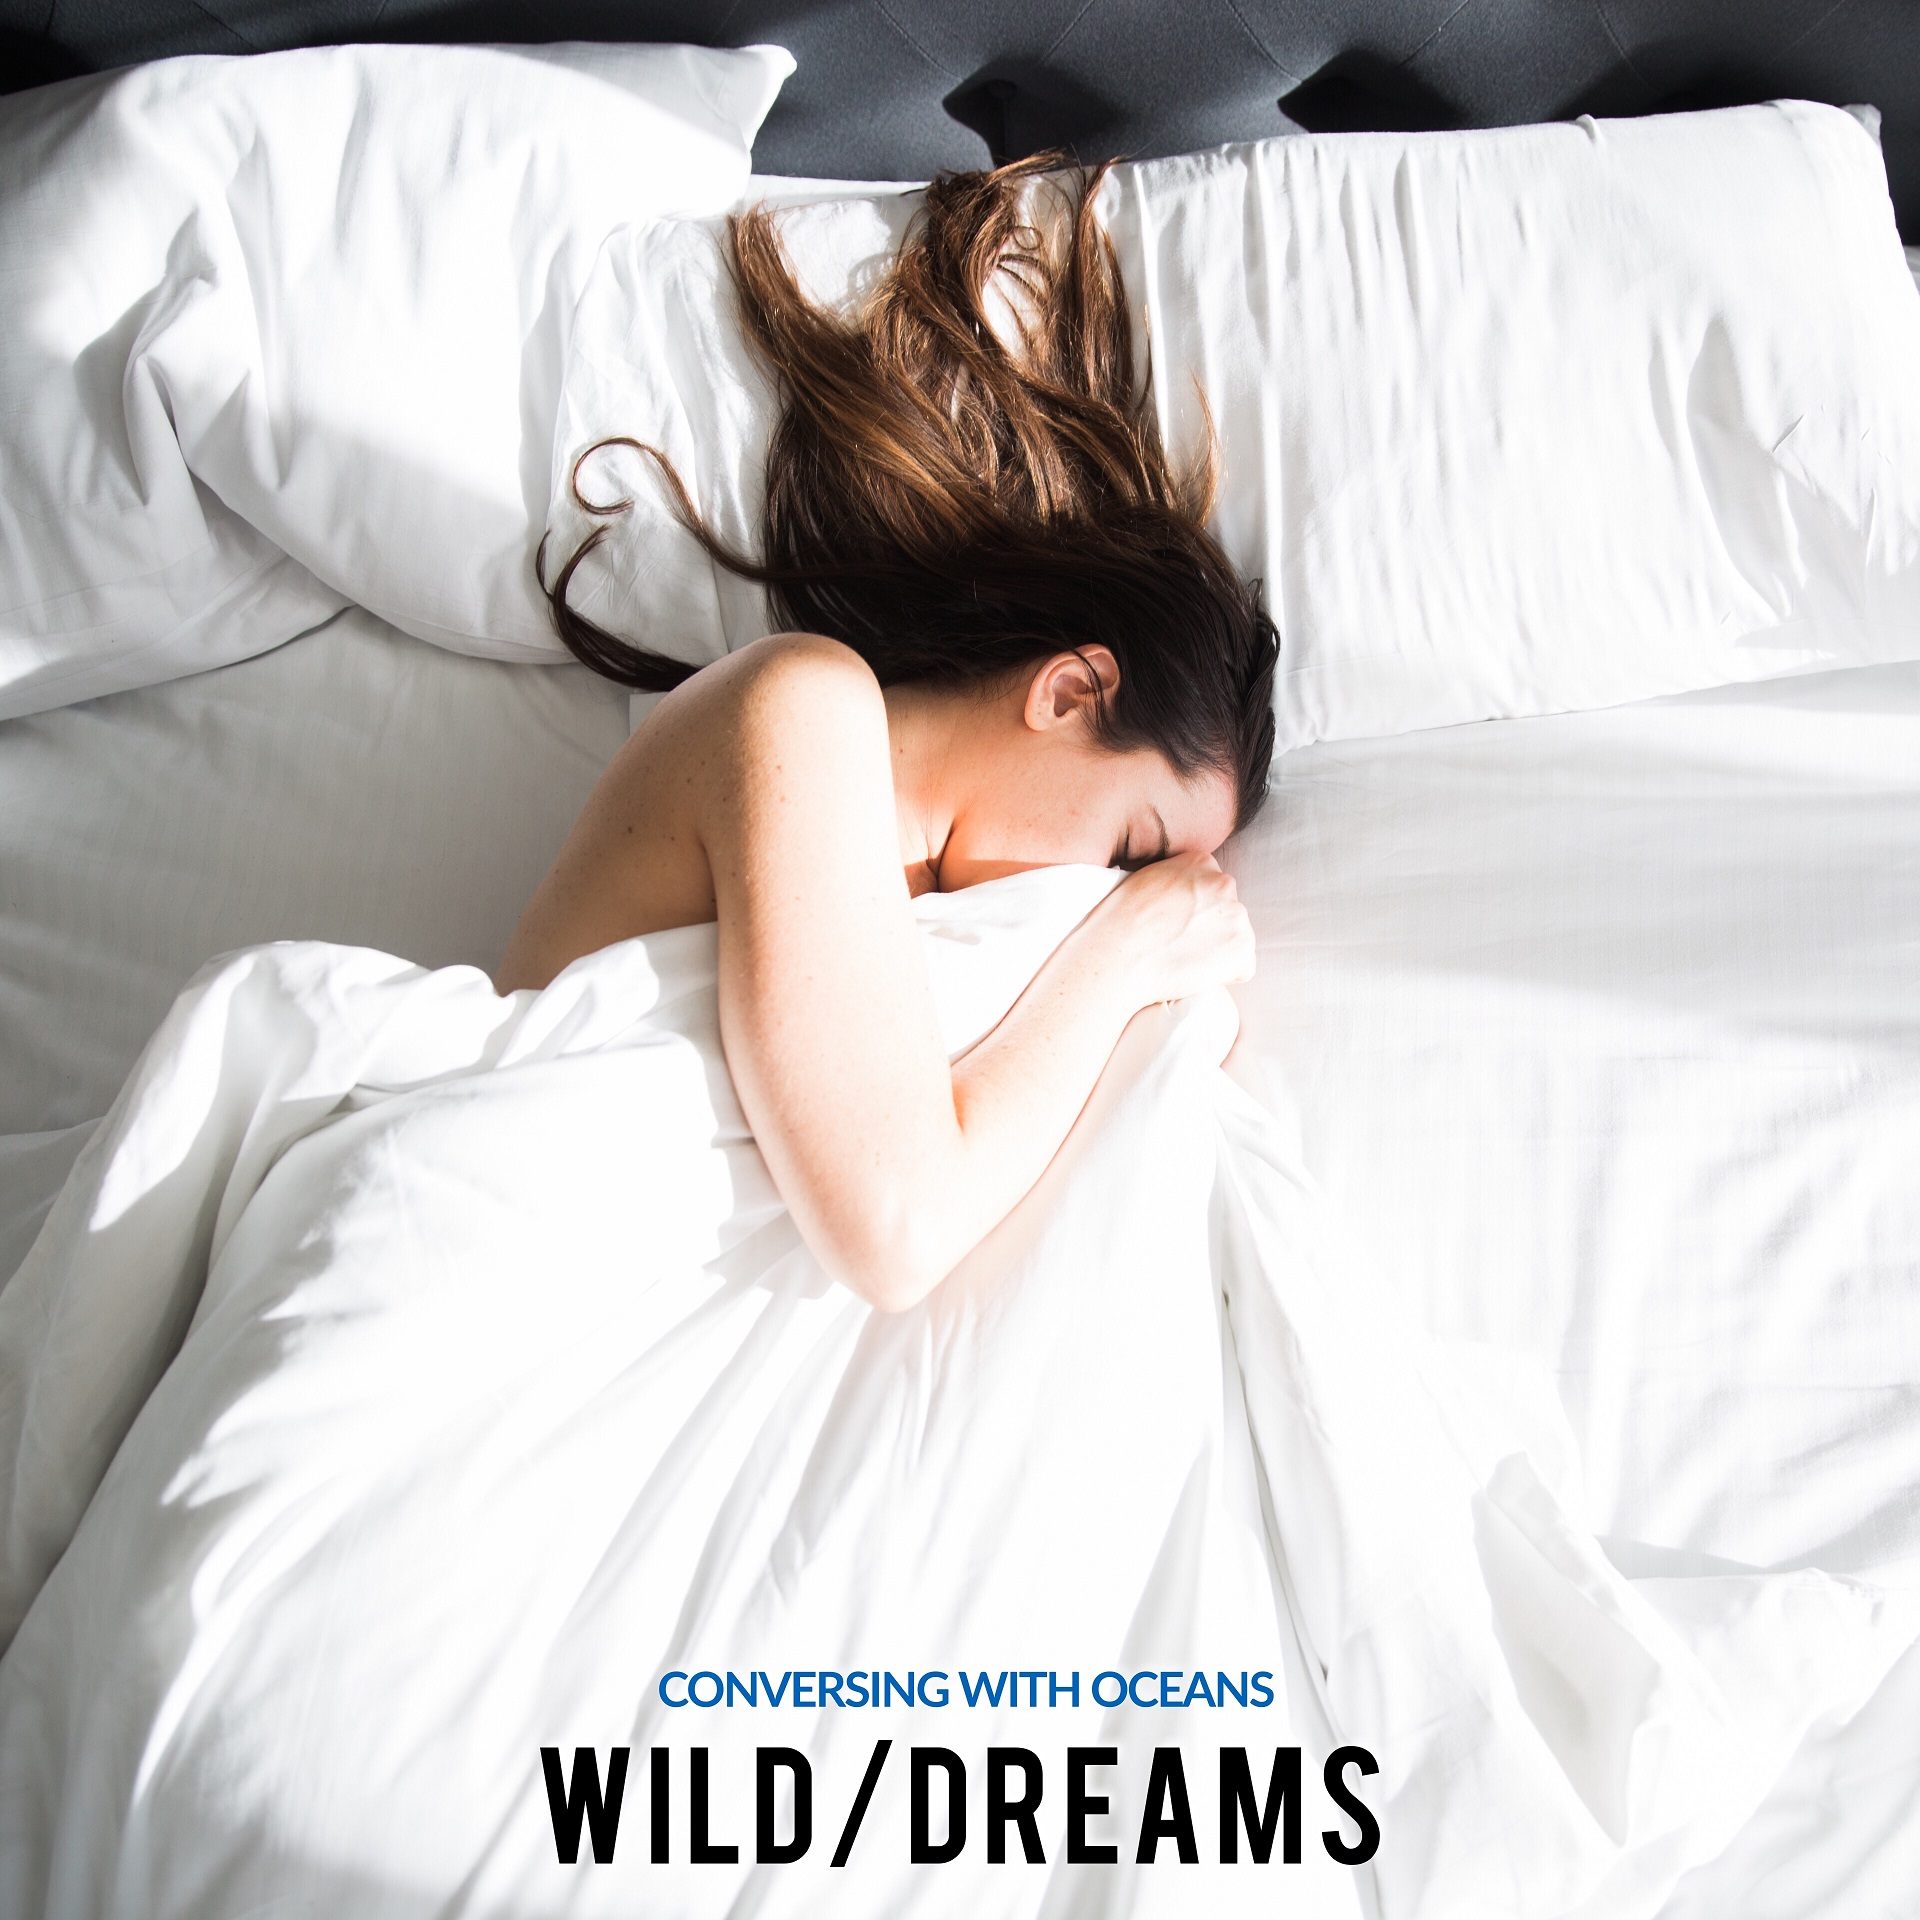 Wild / Dreams - Conversing with Oceans